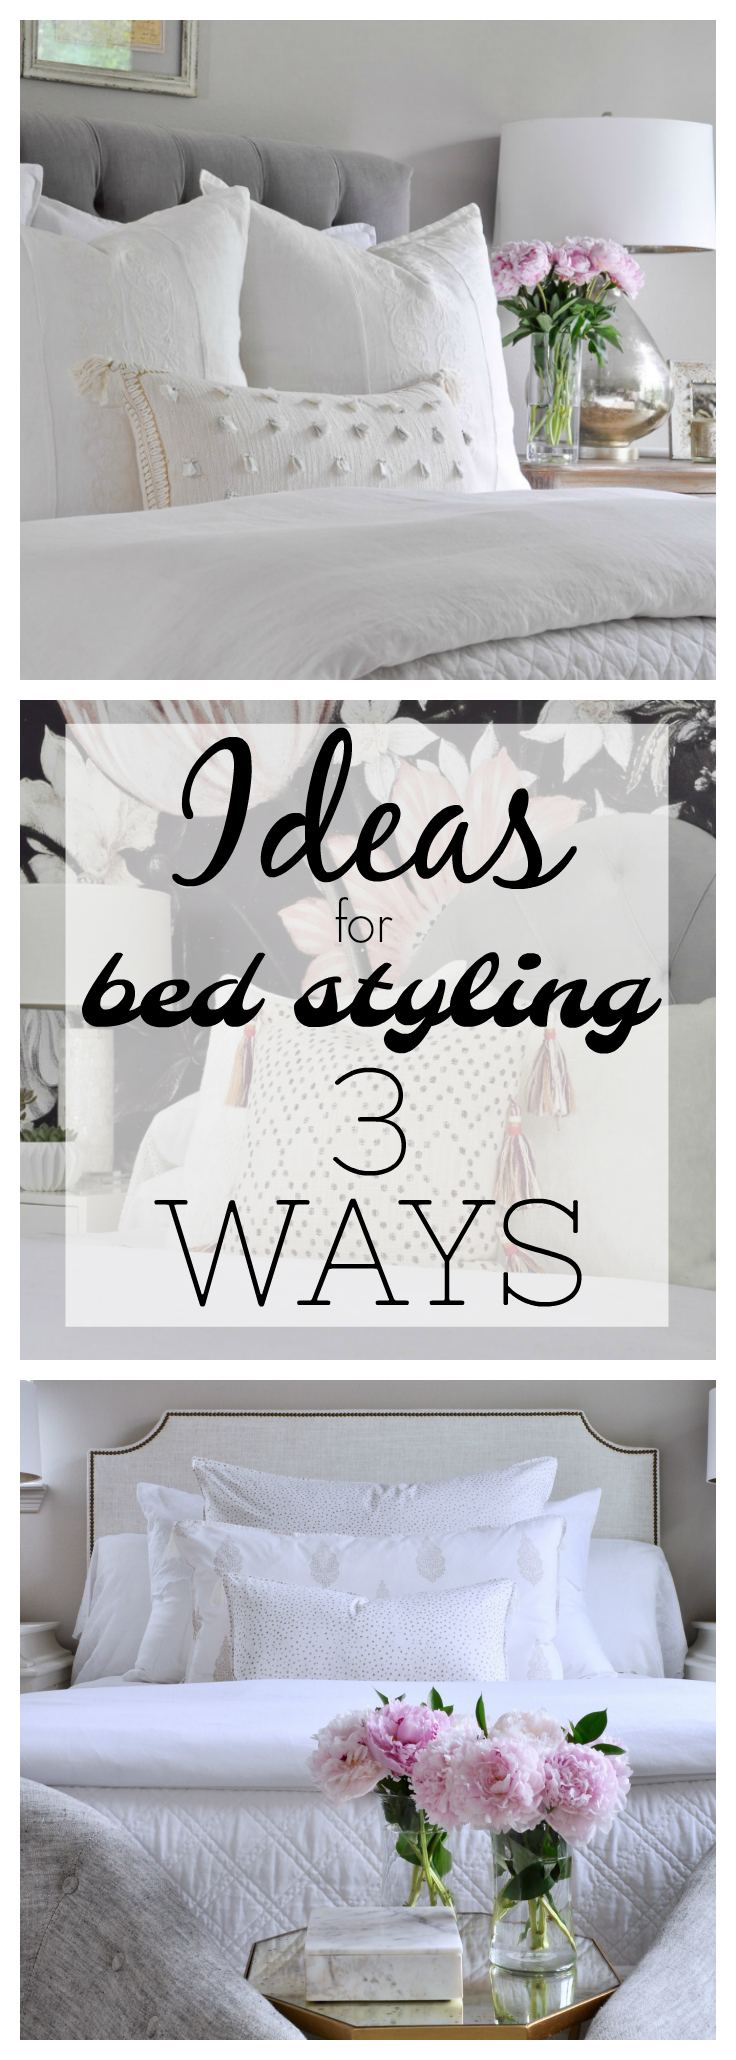 Bed Styled 3 Different Ways Without A Complete Makeover - Bed Styling Ideas